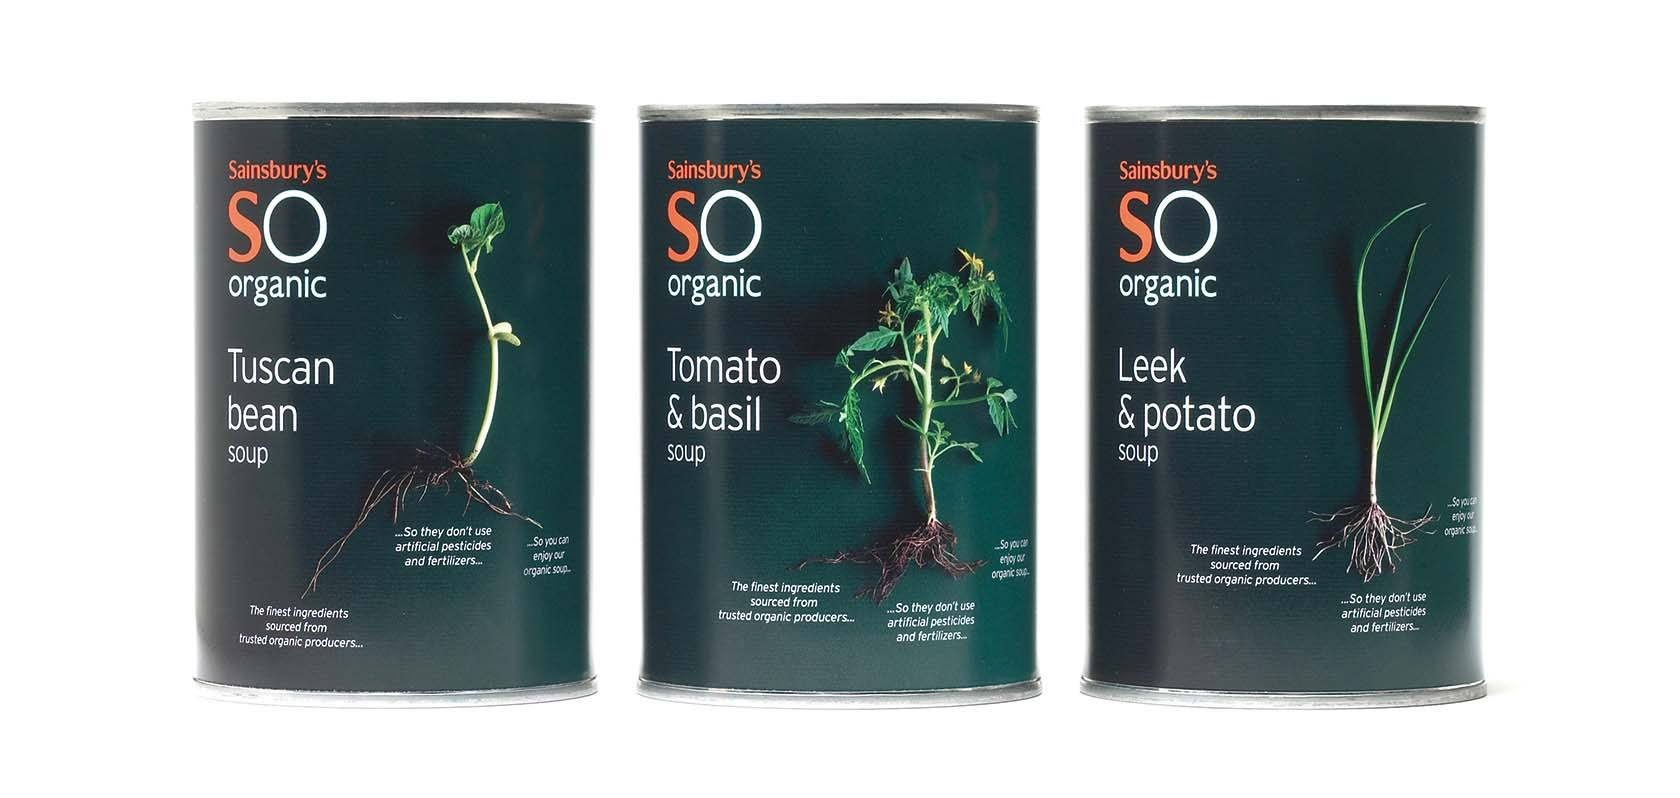 WMH-SAINSBURYS-SO-ORGANICS-TINS-WEB image